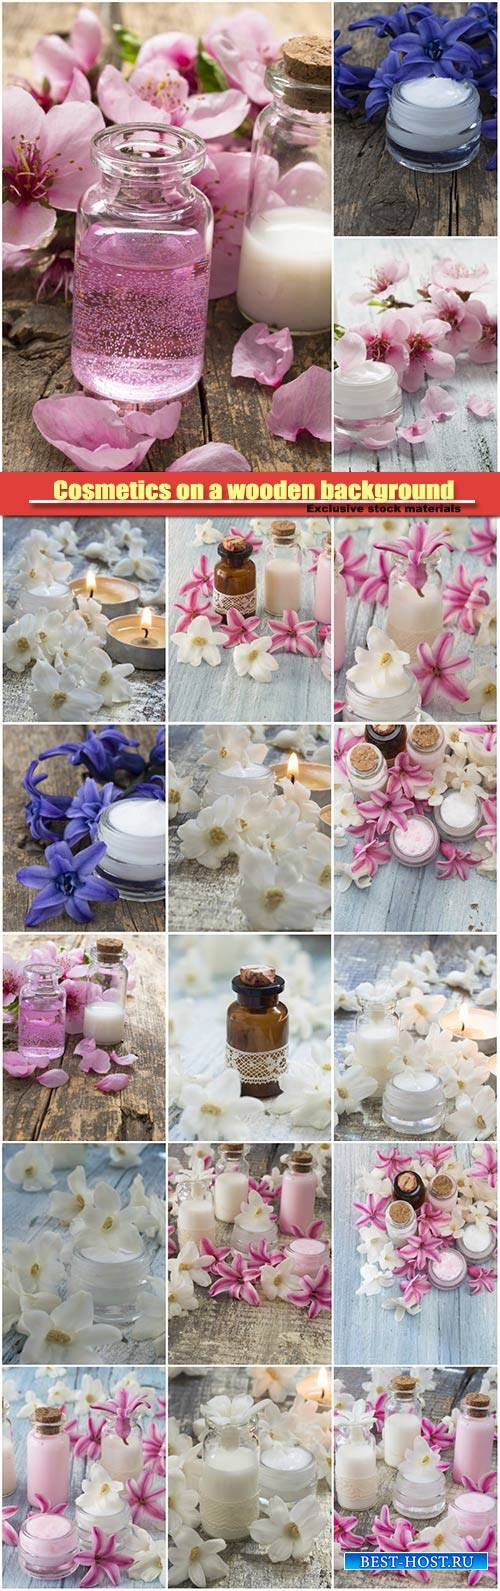 Cosmetics on a wooden background with spring flowers